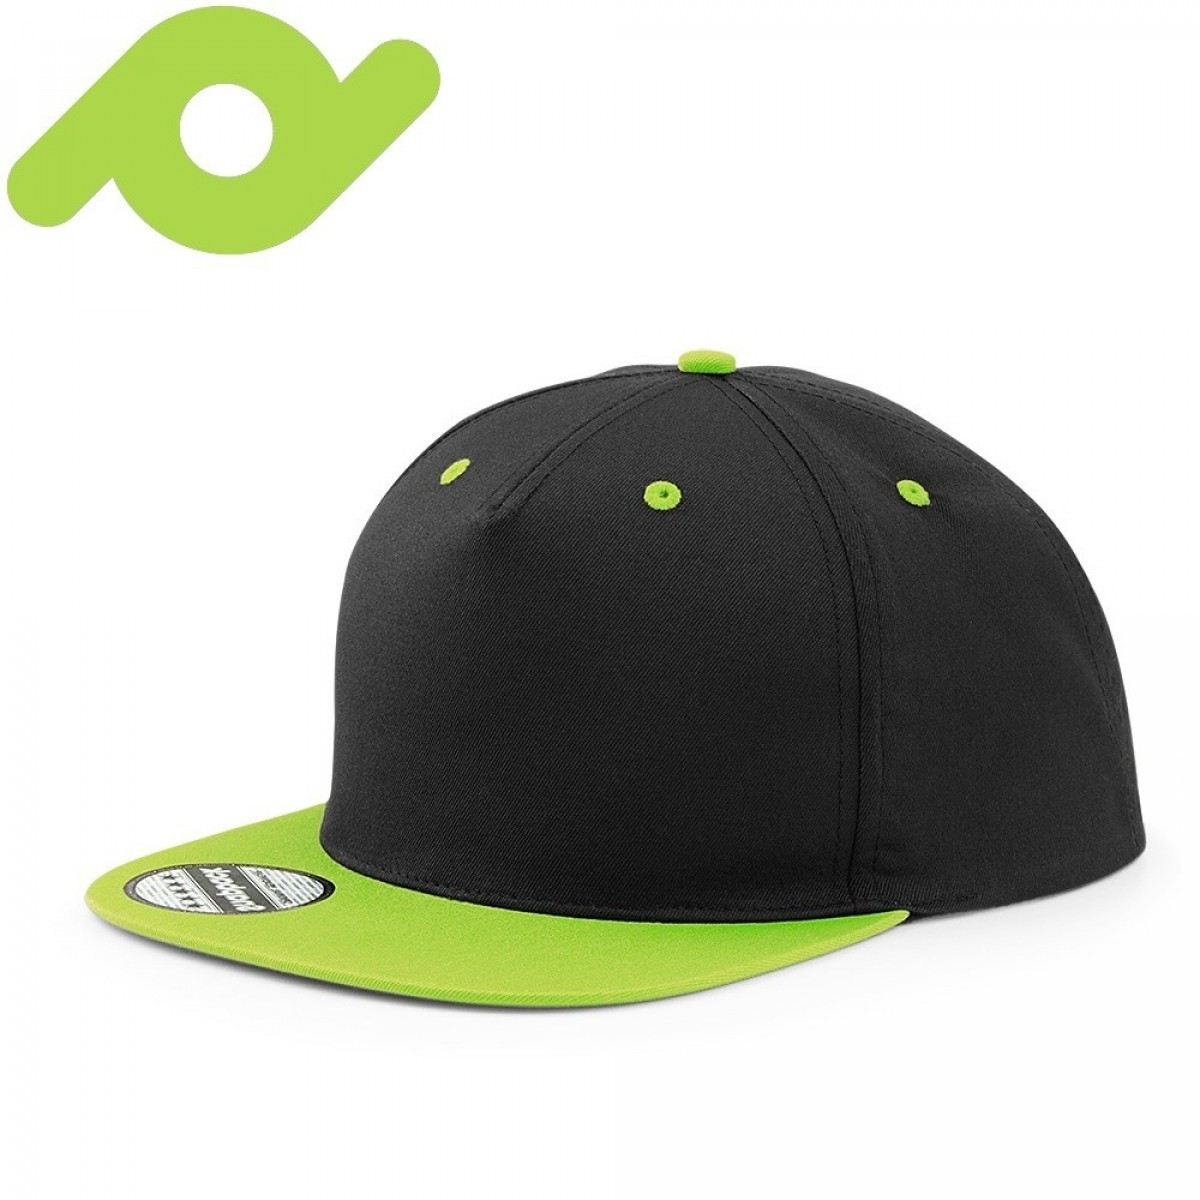 Senvi Snapback met Platte Klep Zwart/Lime (One size fits all)